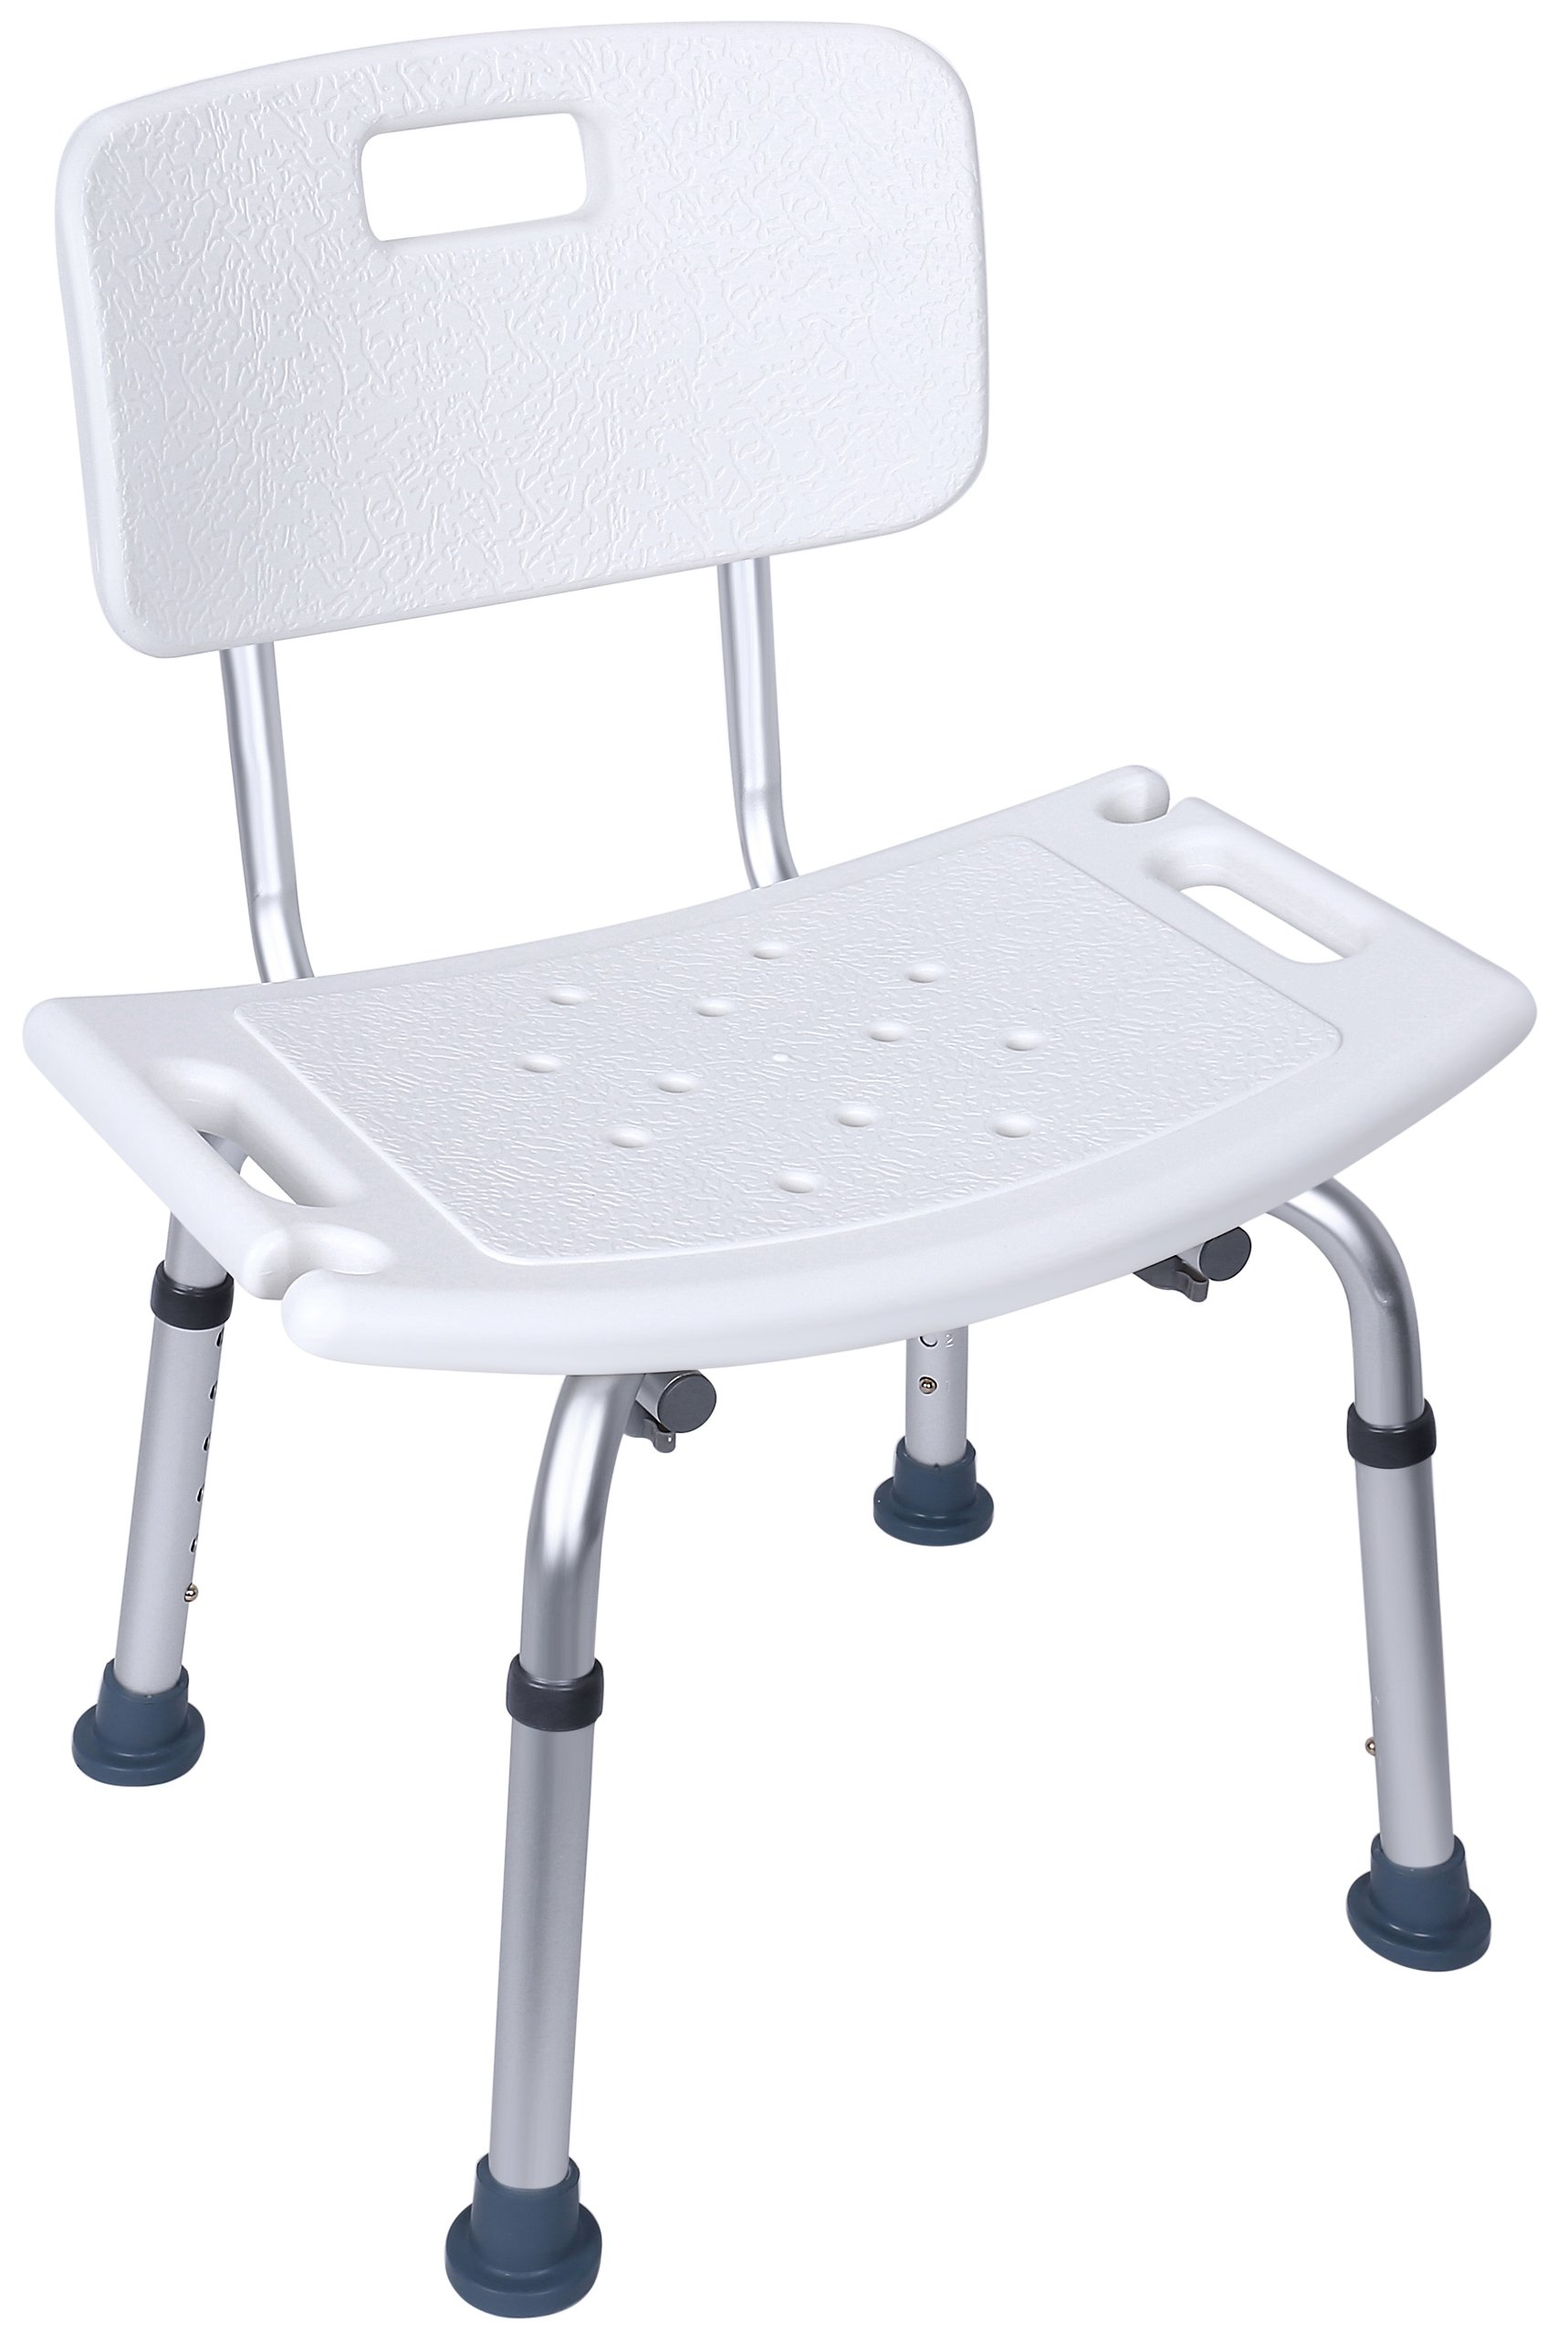 BalanceFrom Adjustable Height Bath Shower Tub Bench Chair with Removable Back